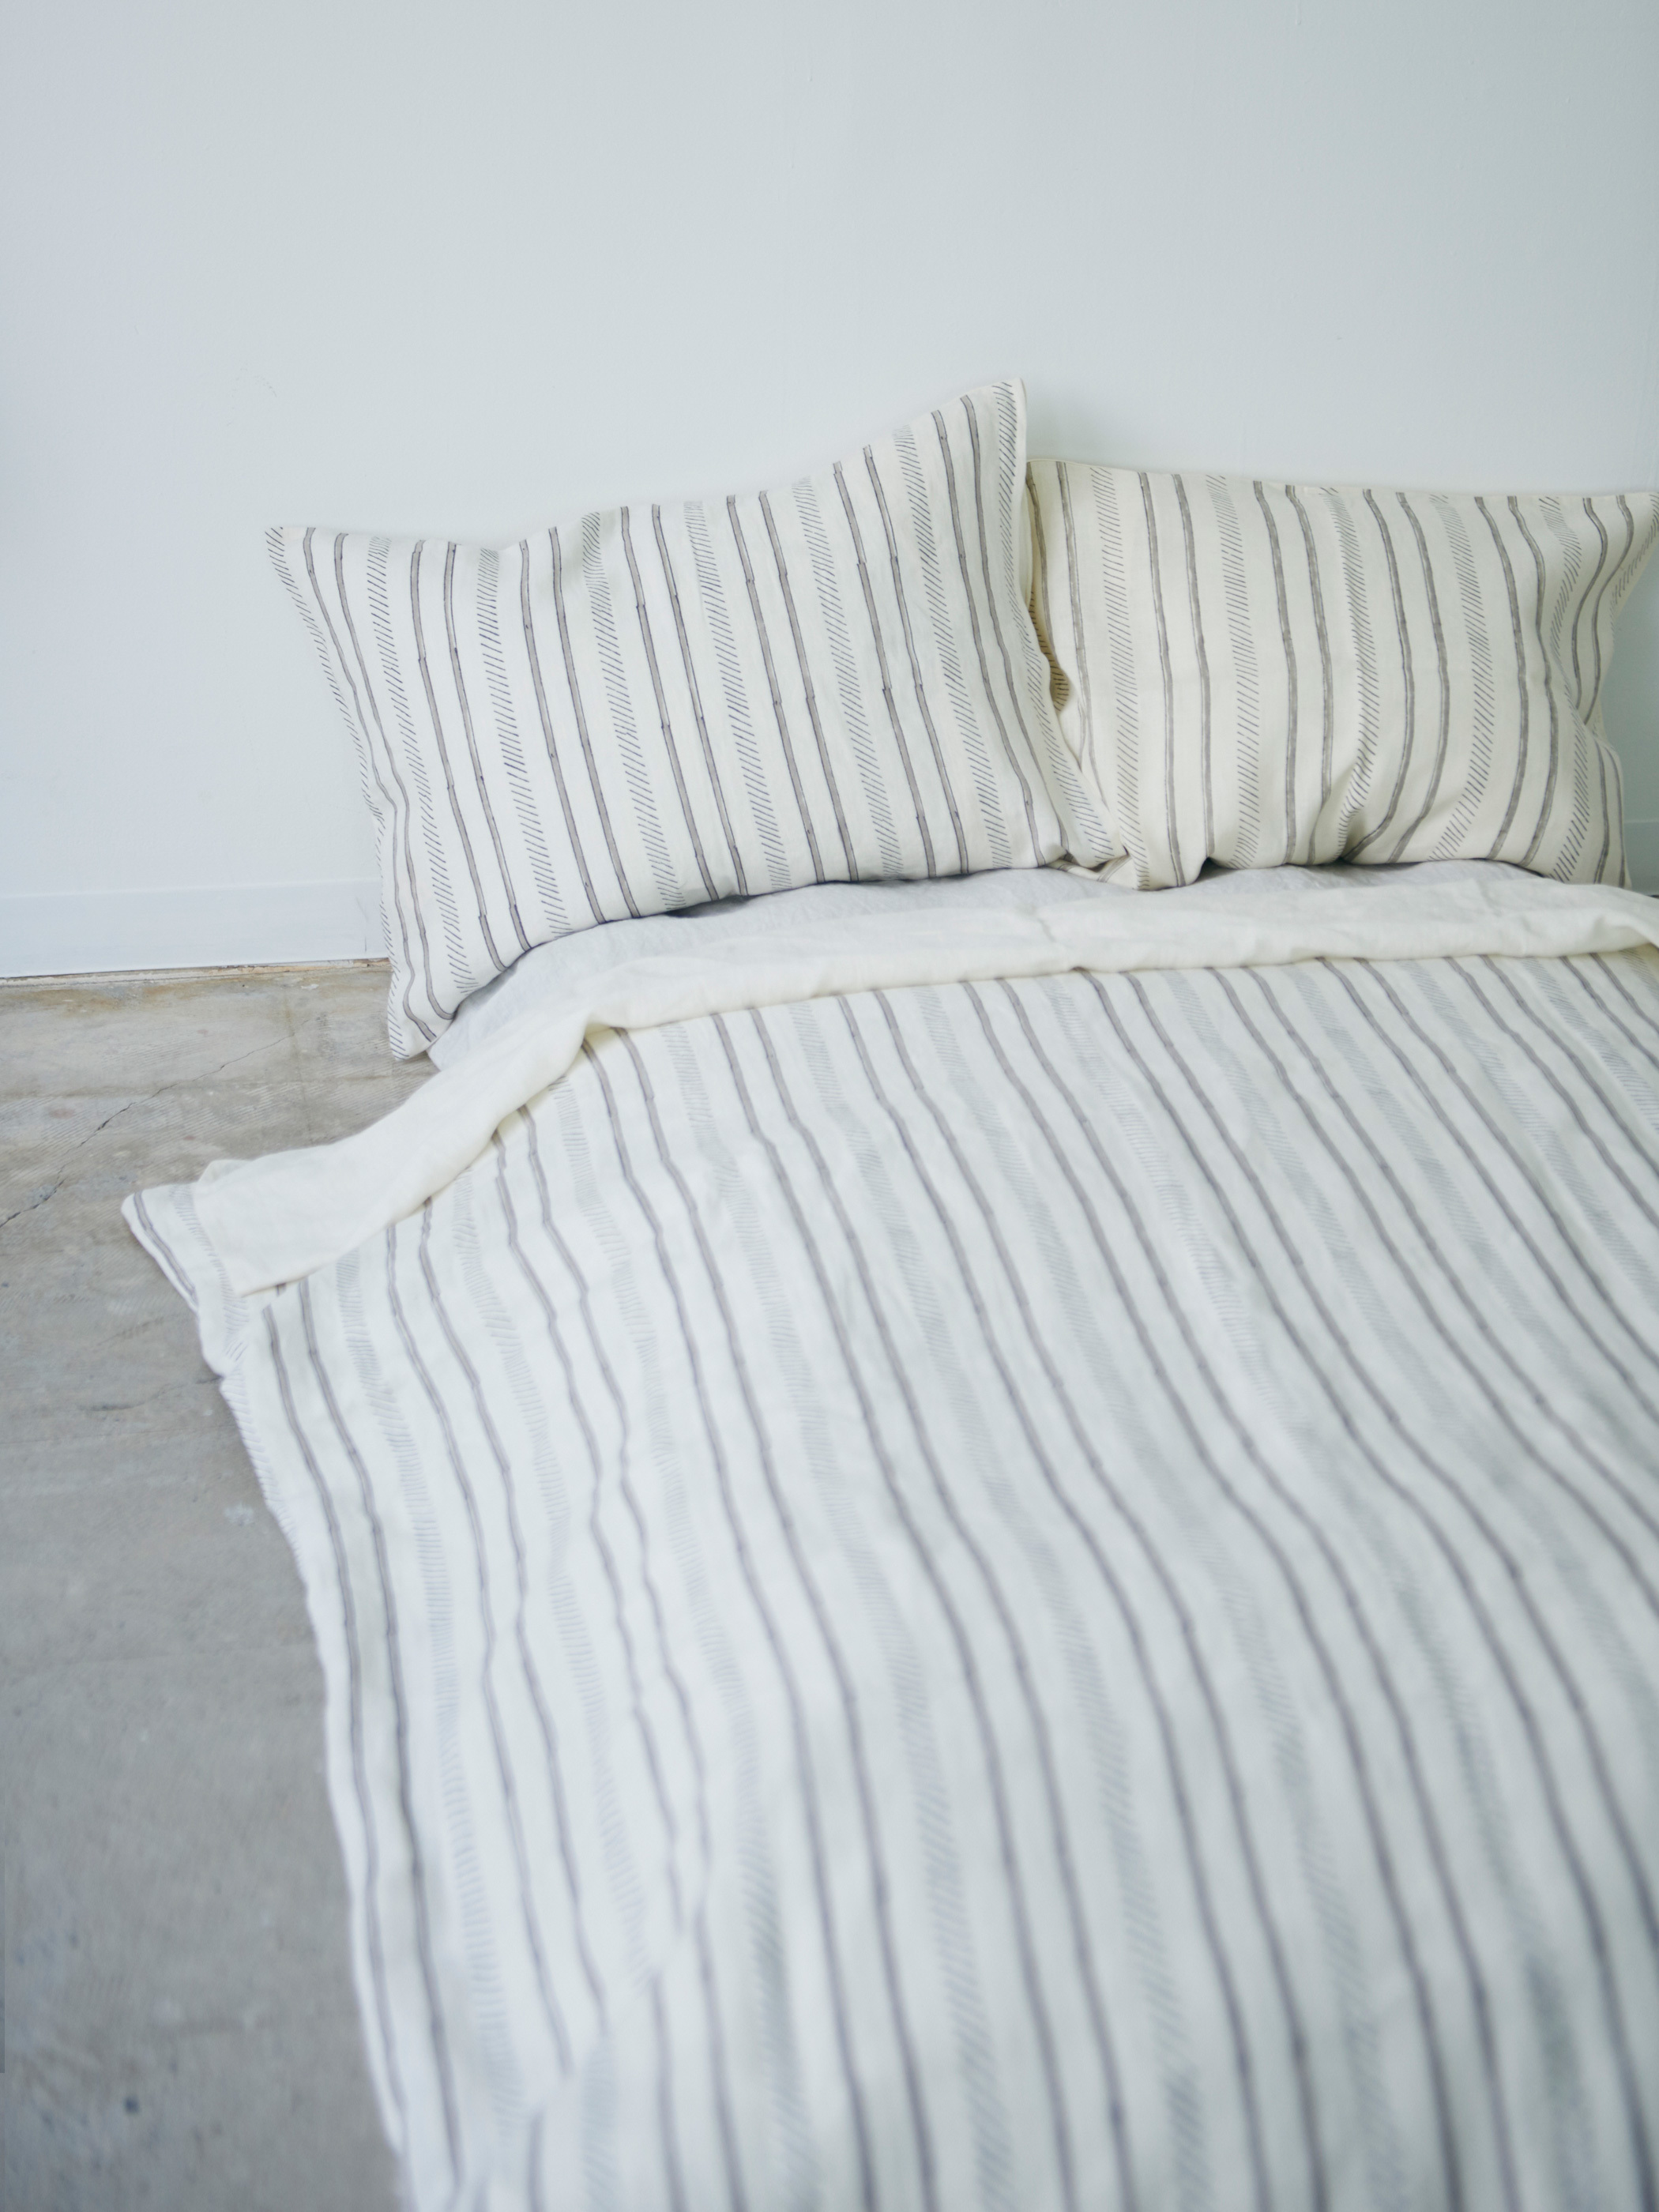 Trail Duvet Cover -Ivory-